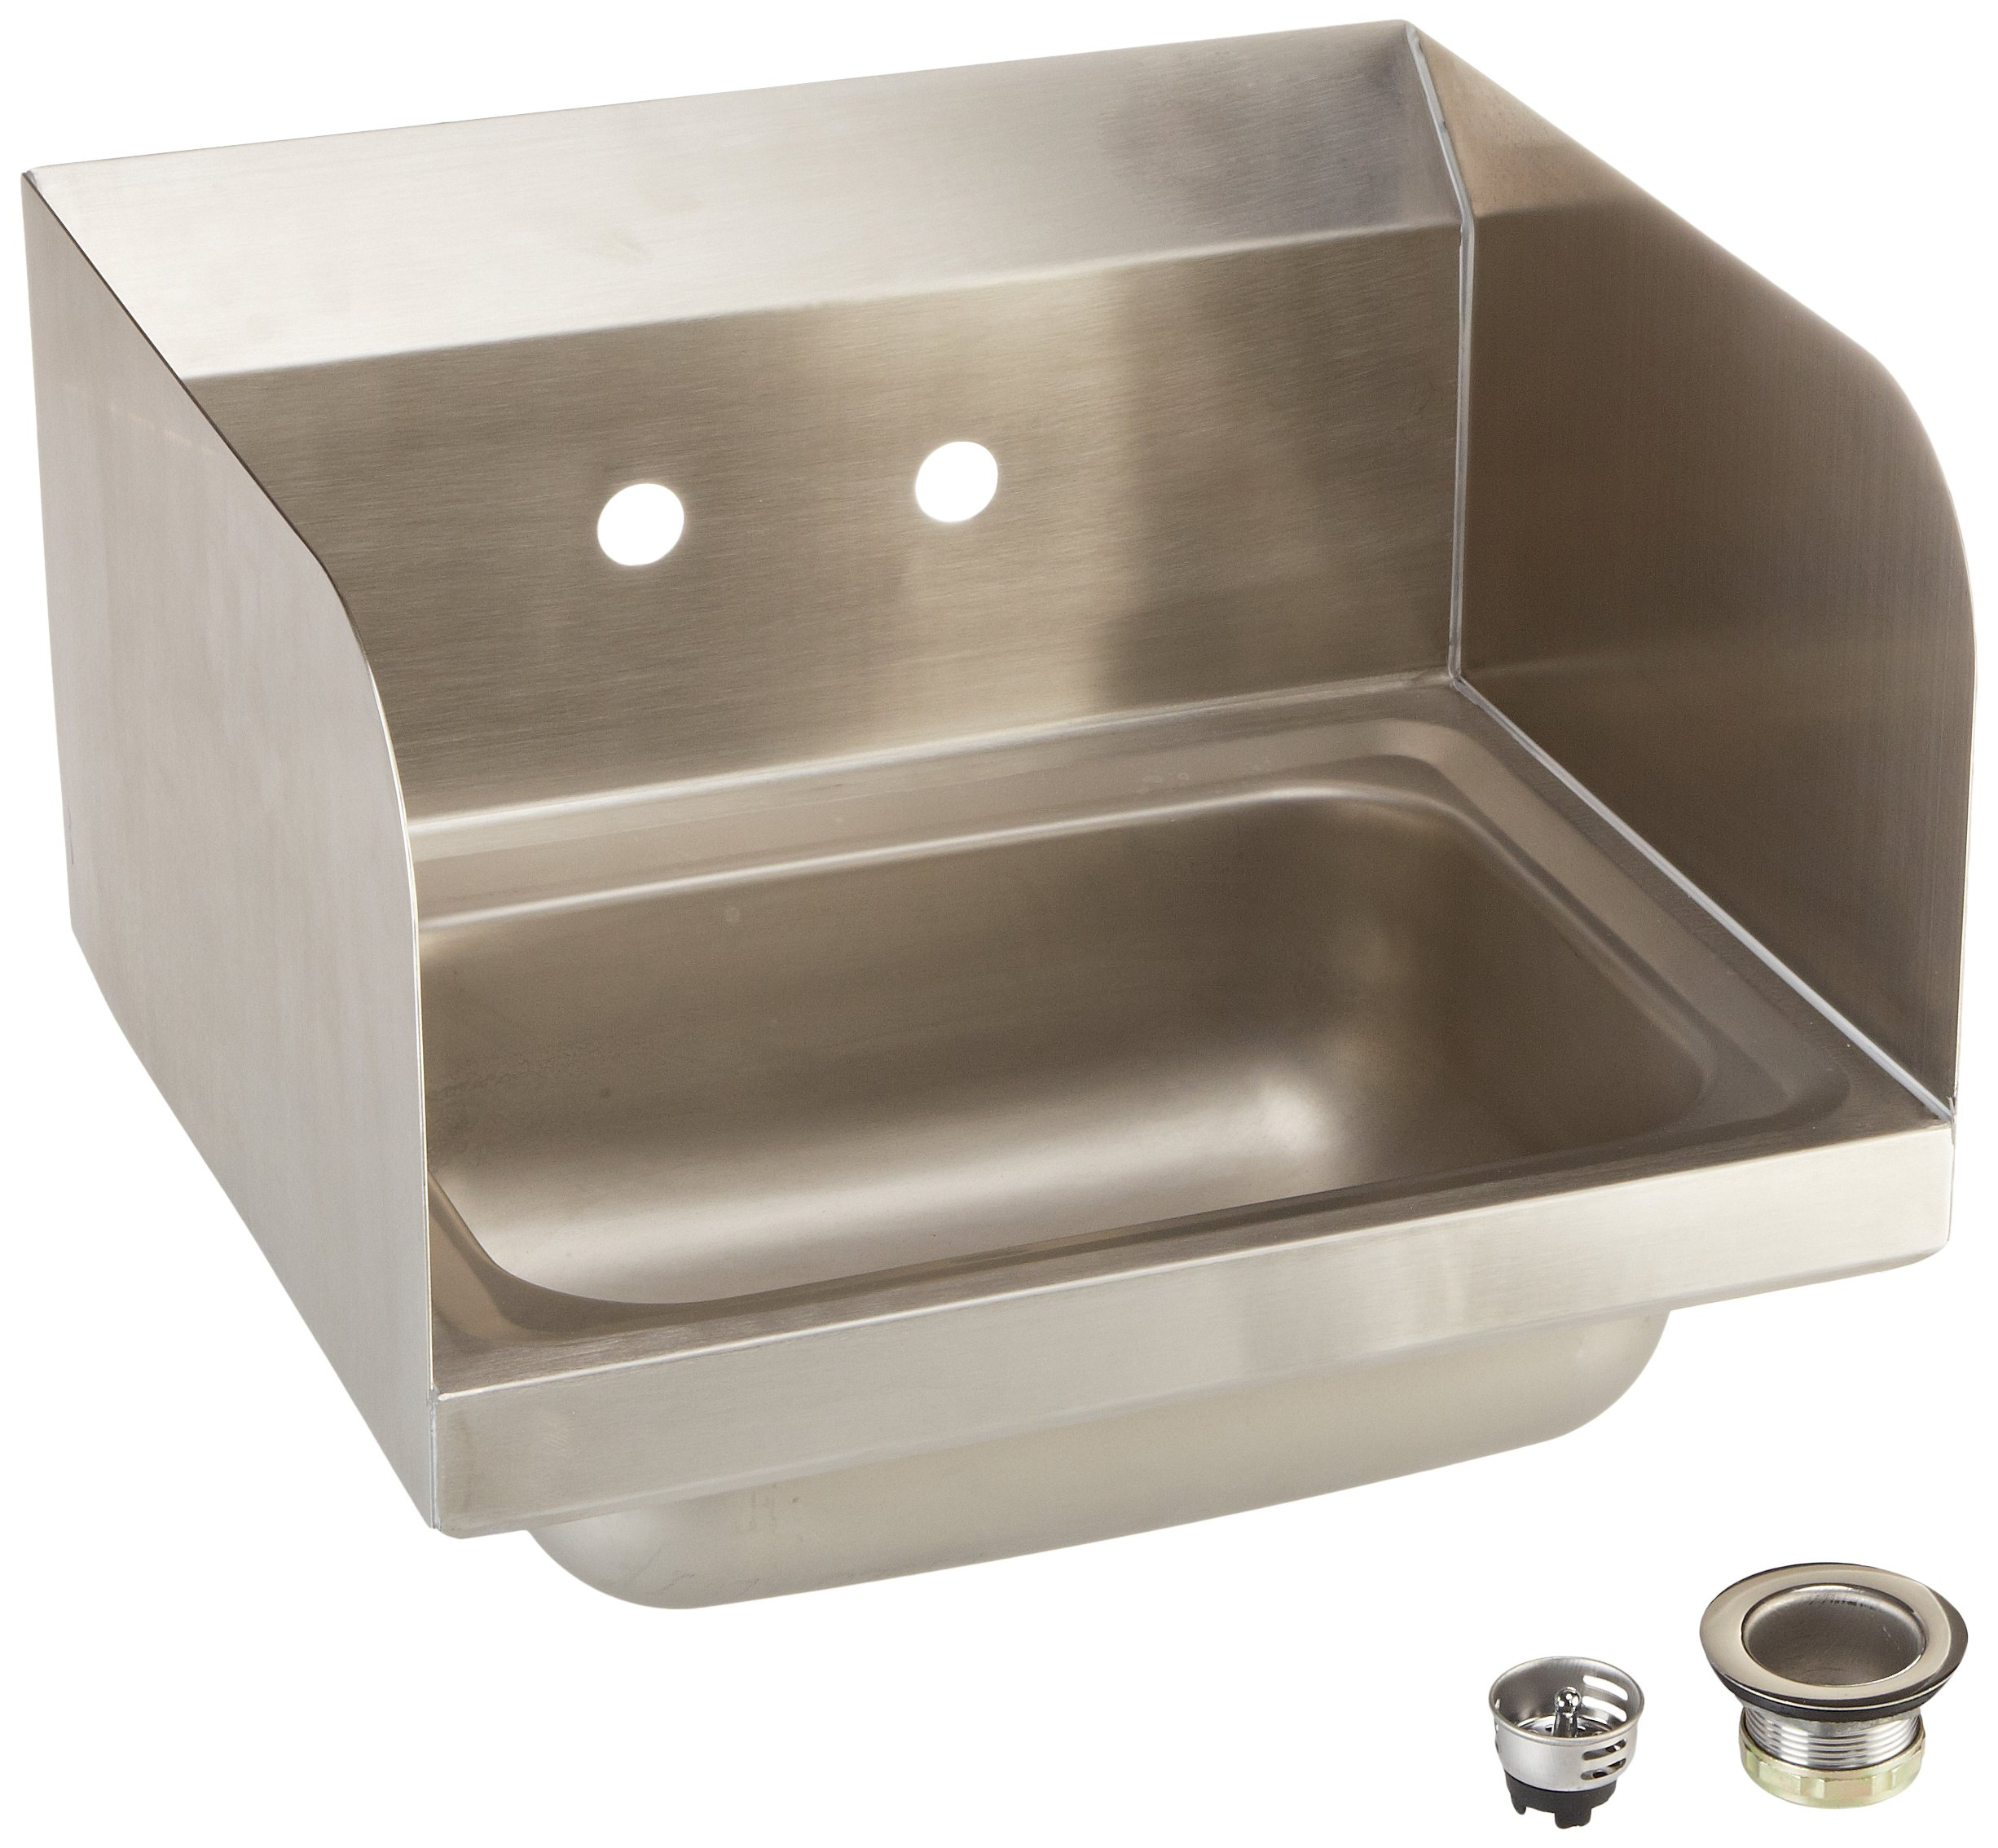 John Boos PBHS-W-1410-SSLR Stainless Steel 304 Pro-Bowl Hand Sink, Faucel Location: Splash Mount, Left Hand and Right Hand Side Splash, 14'' Length x 10'' Width x 5'' Depth, 4'' On-Center, 1-7/8'' Drain